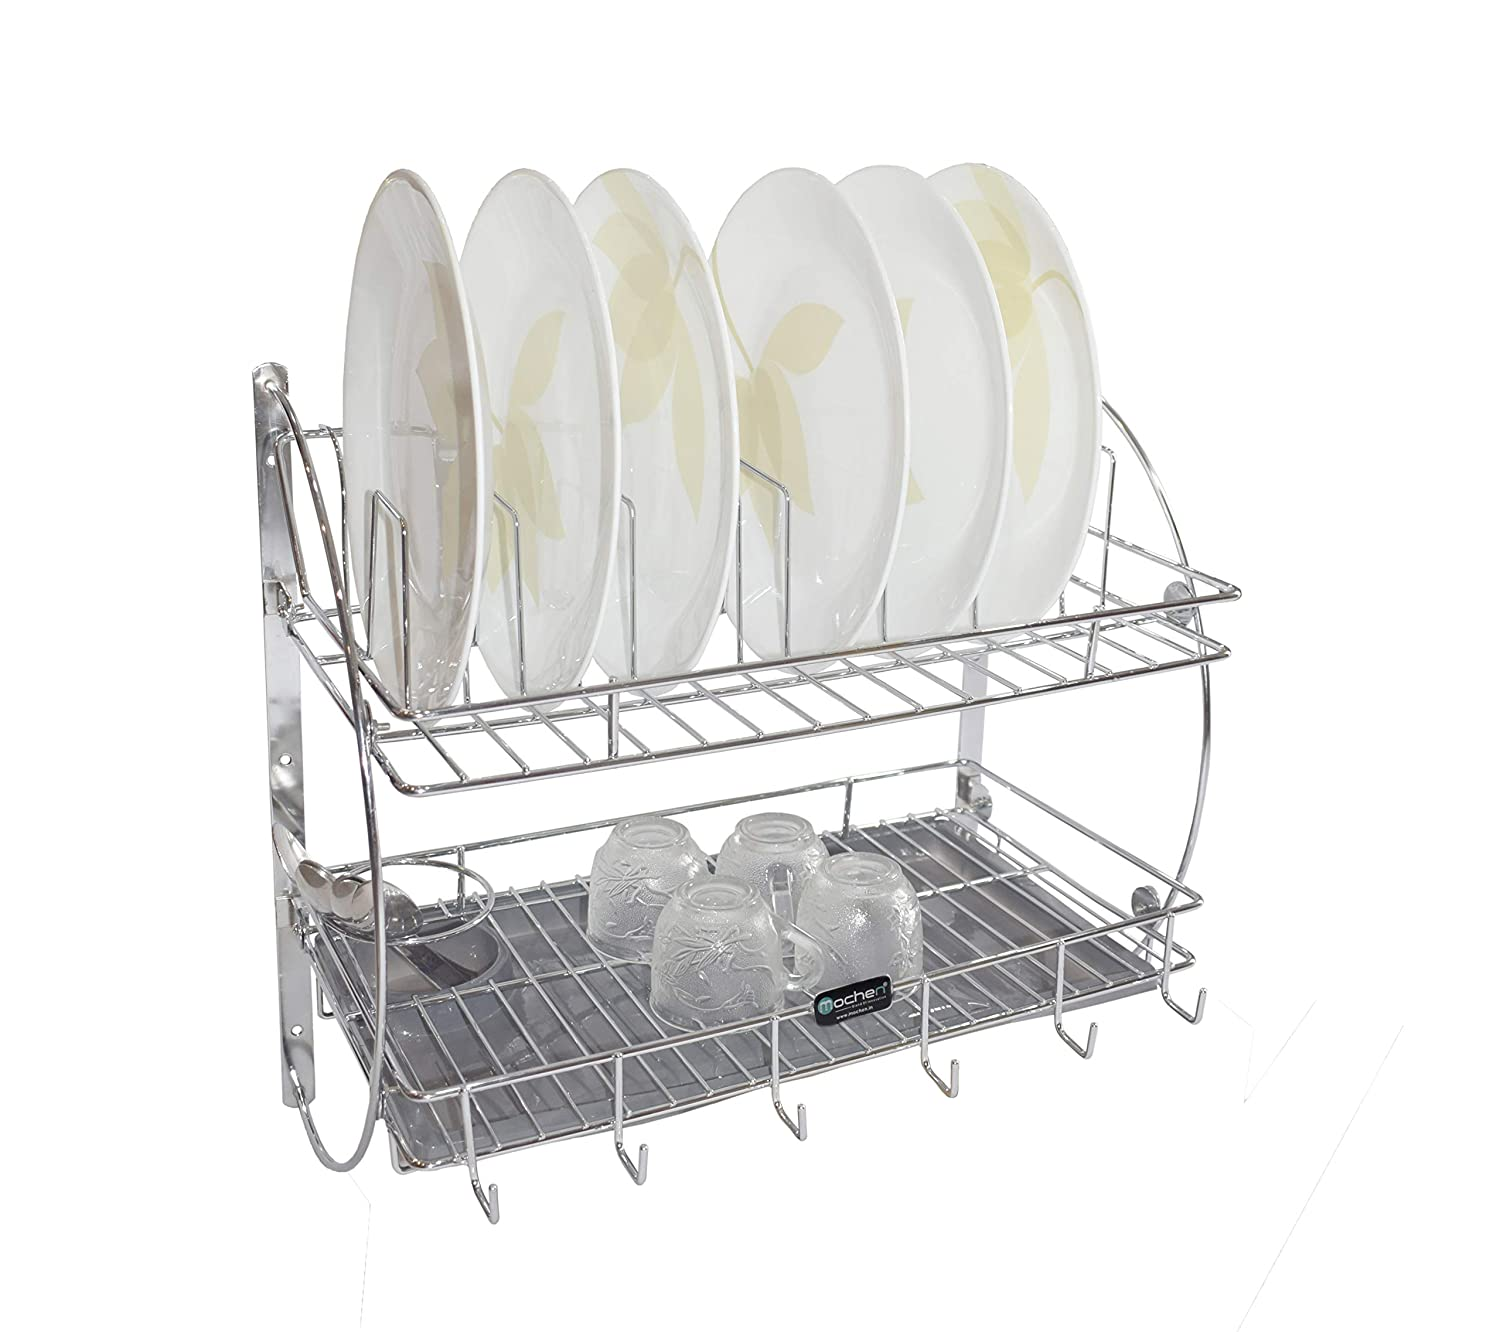 Buy Mochen Kitchen Rack With Removable Strong Plastic Drip Tray Racks Shelves Racks Dish Rack Utensil Holder Rack Online At Low Prices In India Amazon In